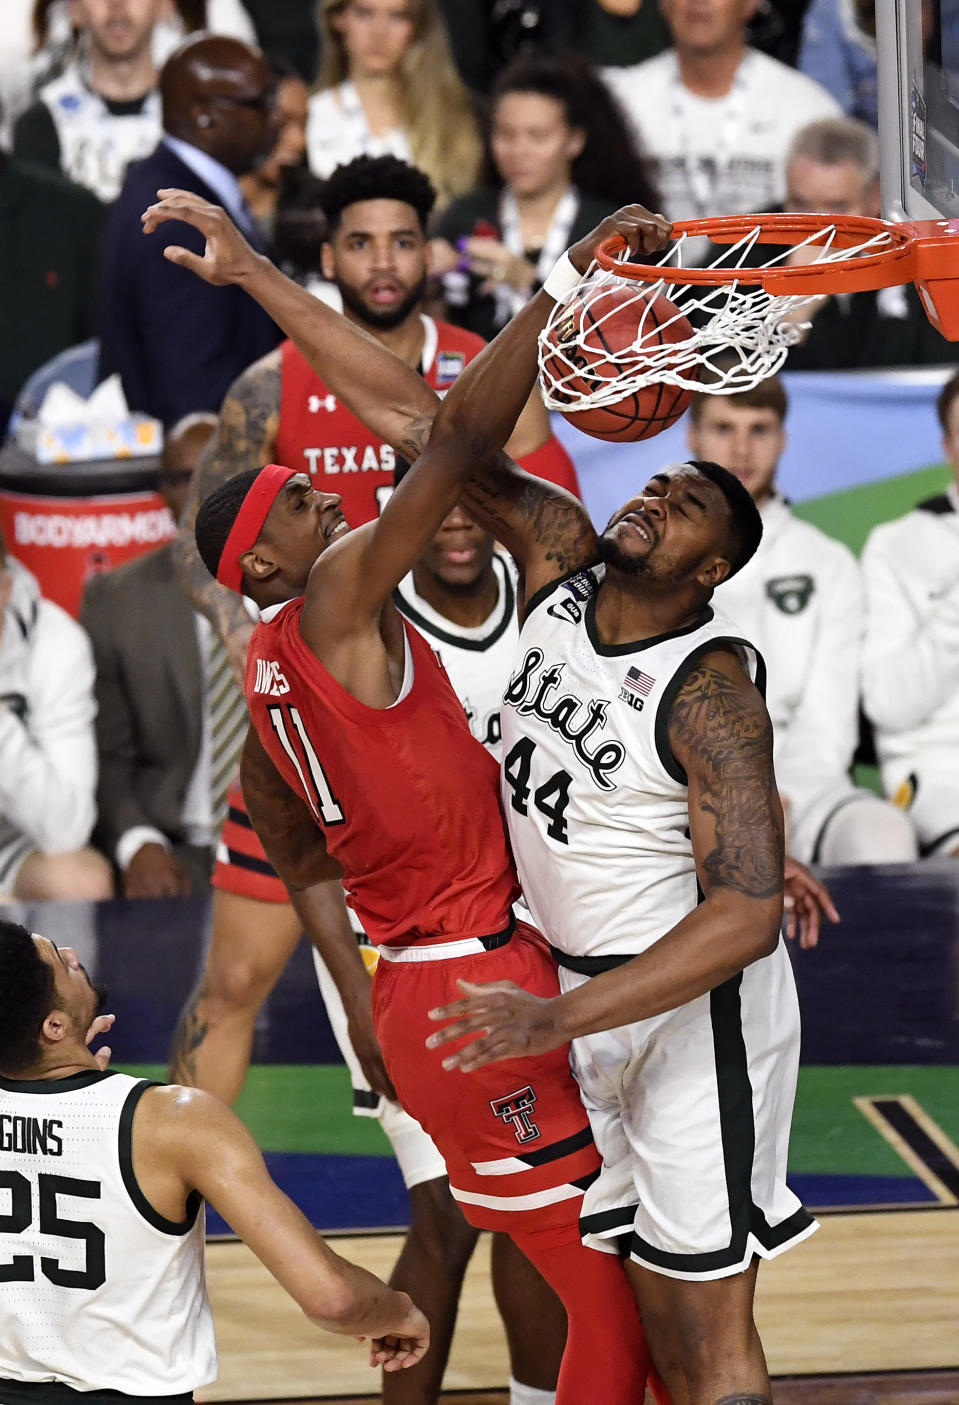 Tariq Owens #11 of the Texas Tech Red Raiders dunks the ball against Nick Ward #44 of the Michigan State Spartans in the first half during the 2019 NCAA Final Four semifinal at U.S. Bank Stadium on April 6, 2019 in Minneapolis, Minnesota. (Photo by Hannah Foslien/Getty Images)